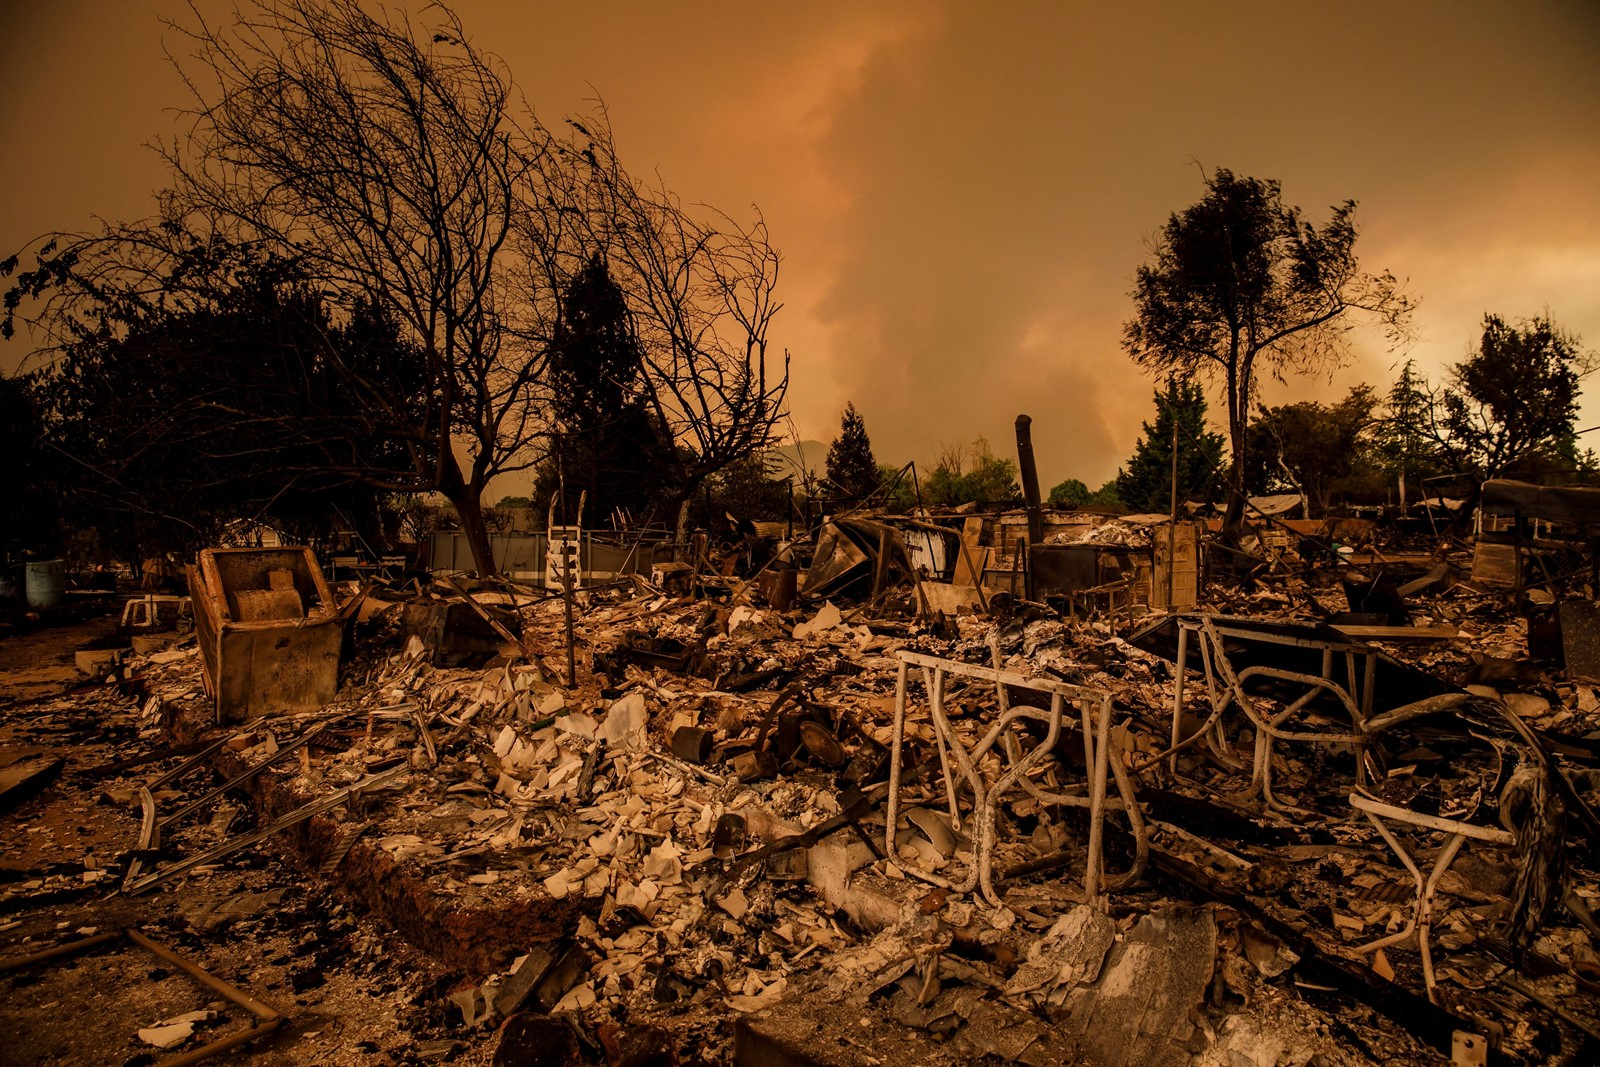 A wildfire destroyed homes in the Lake Keswick Estates neighborhood near Redding. Temperatures in Redding are expected to reach 110 degrees on Saturday. — Photograph: Marcus Yam/Los Angeles Times.